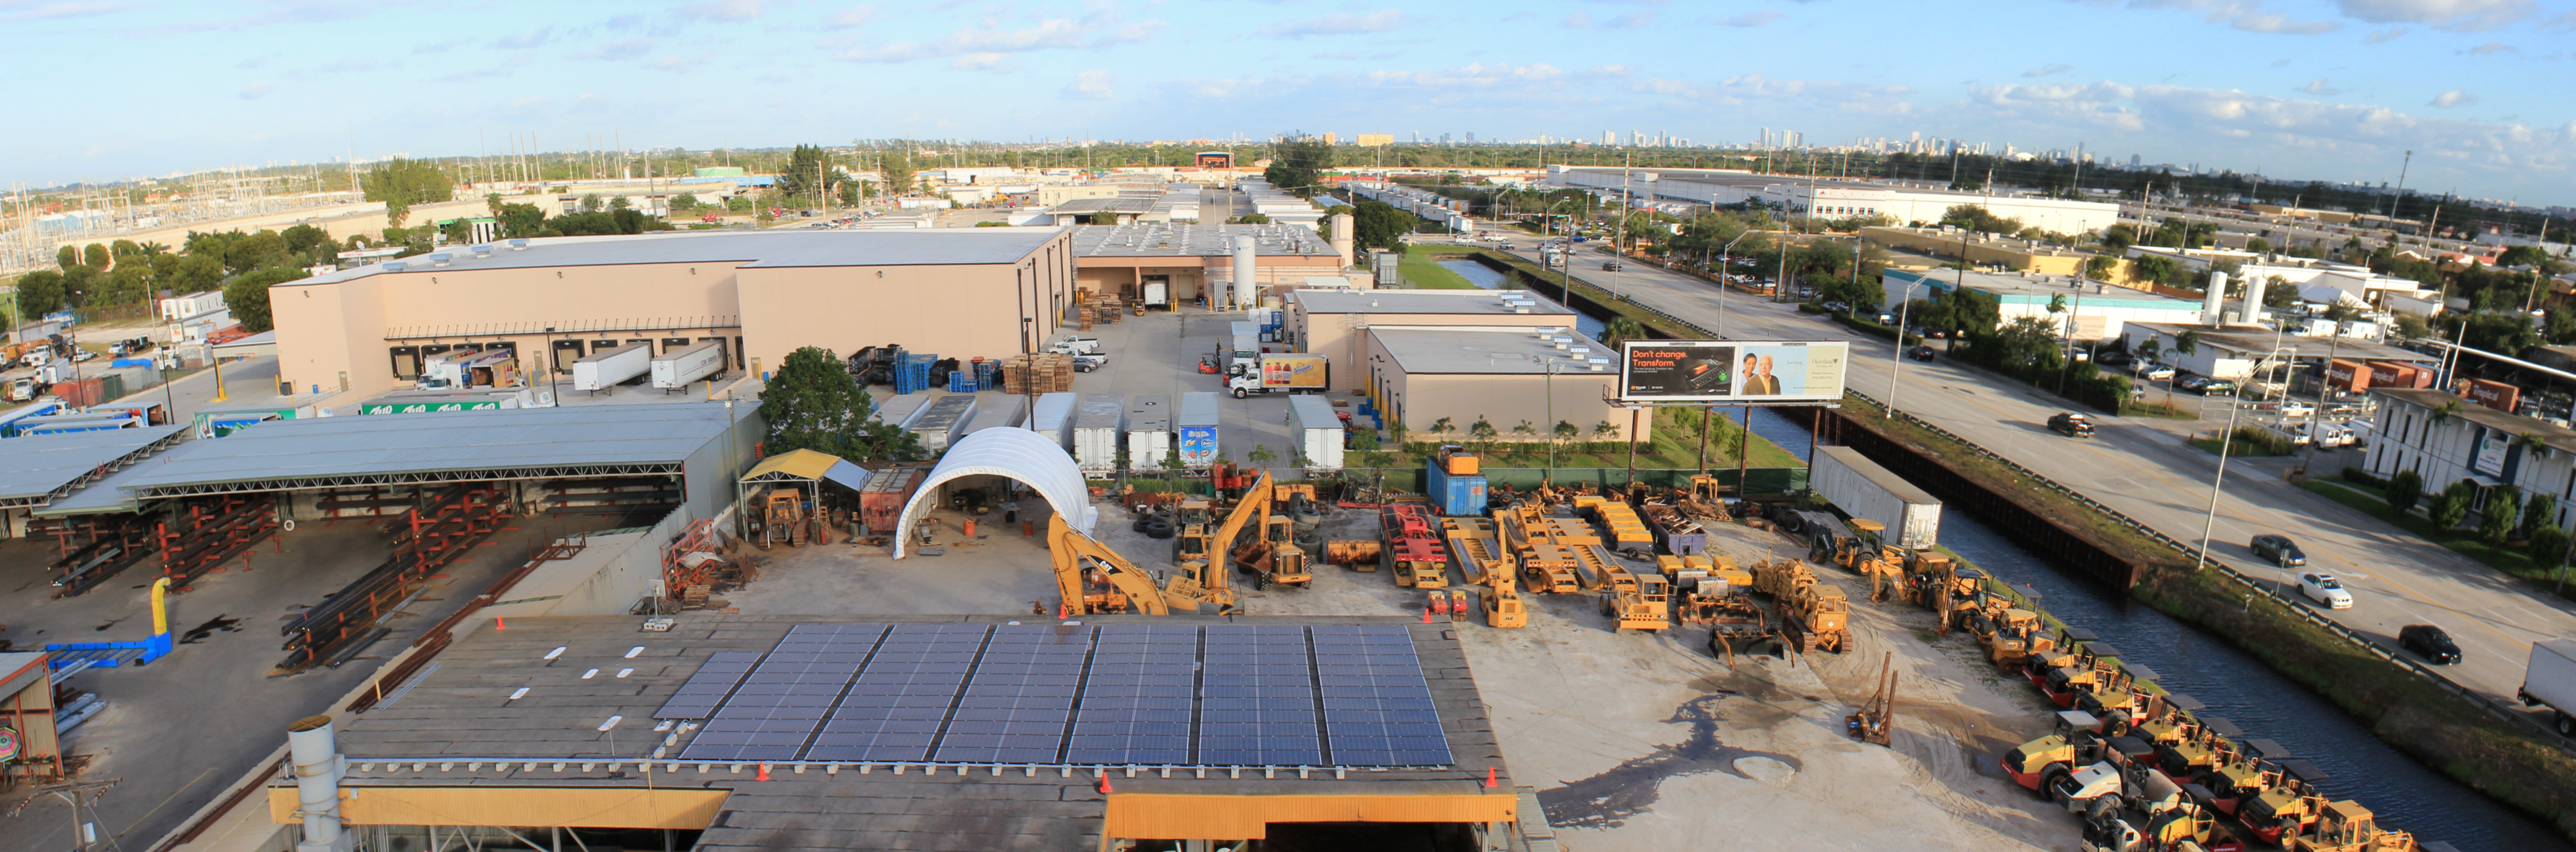 35 kW Flush Mounted PV System in Miami, FL